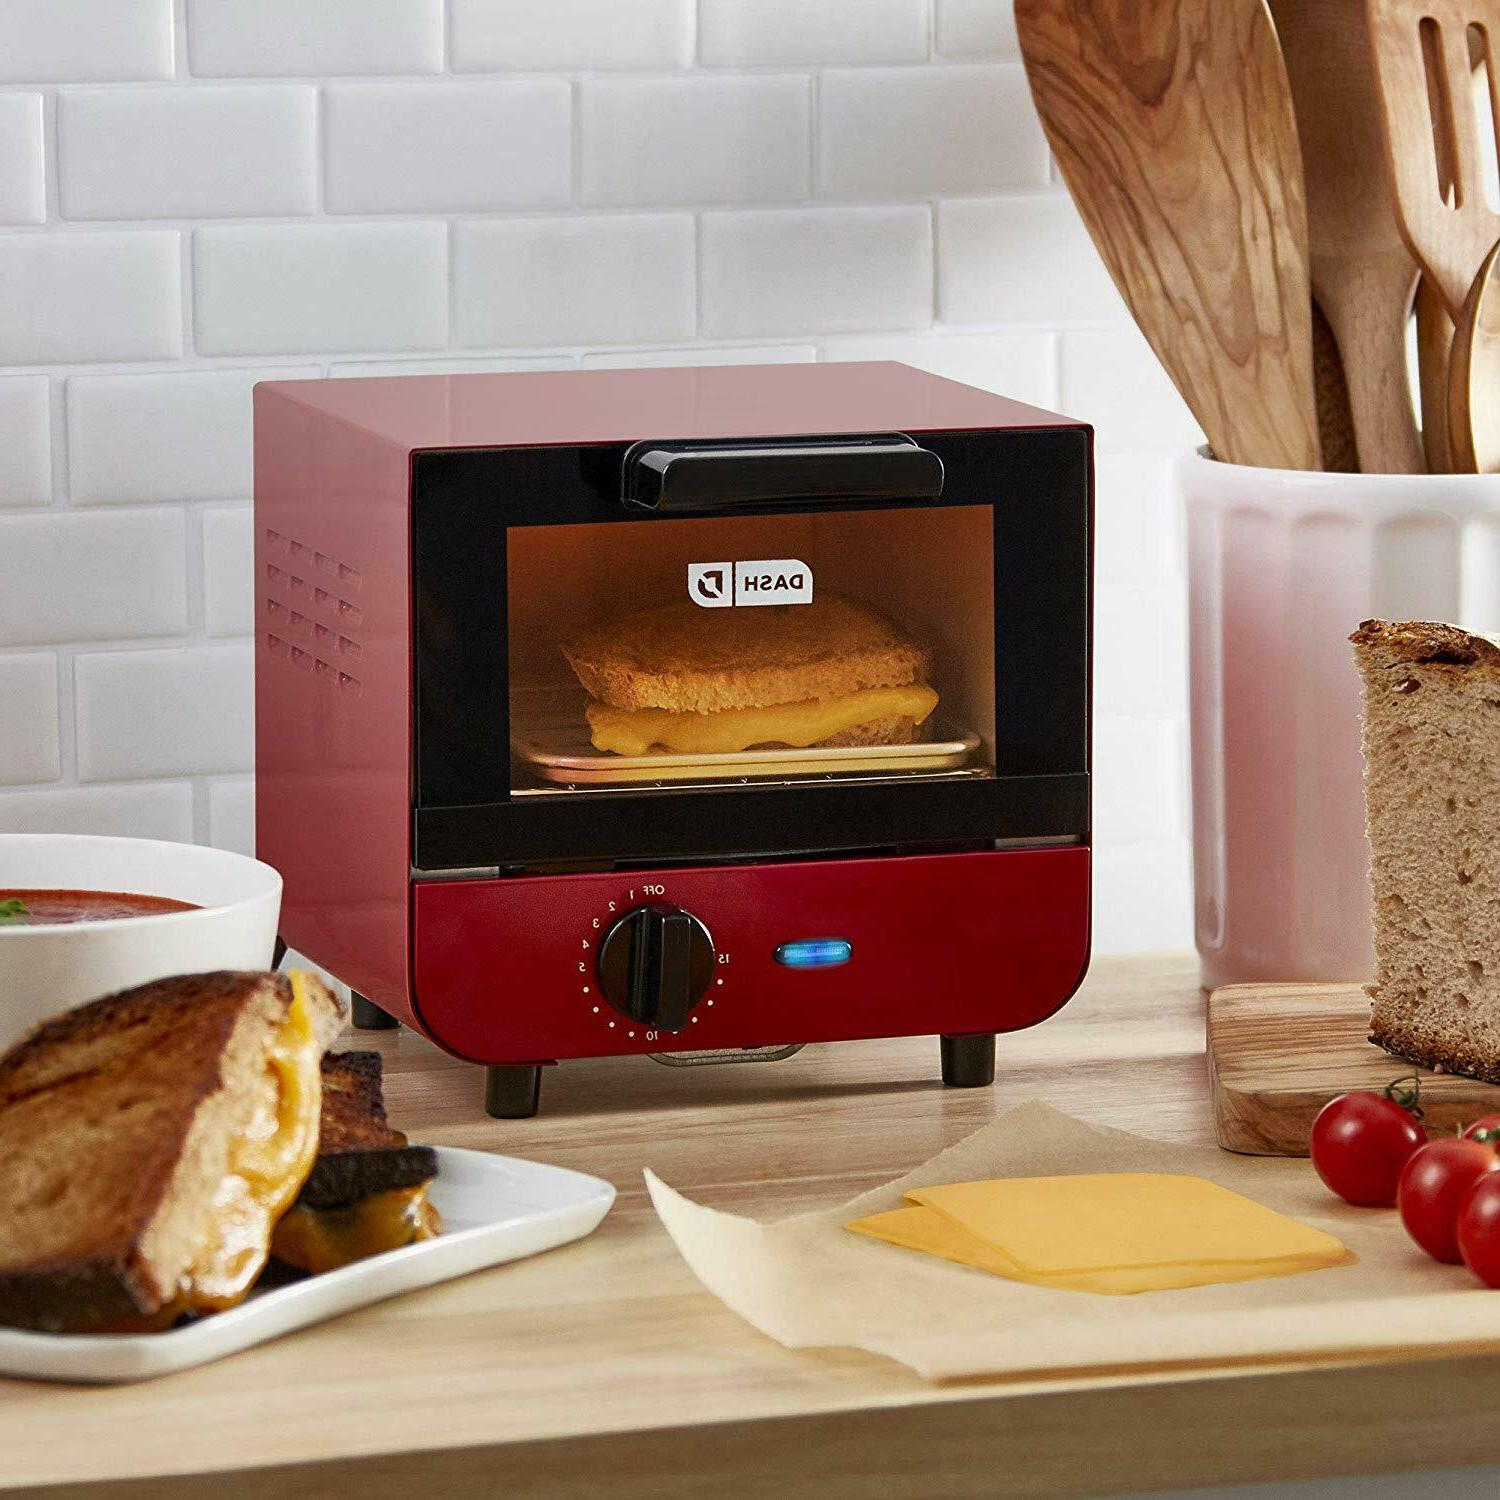 Easy Clean Toaster with Temperature Control